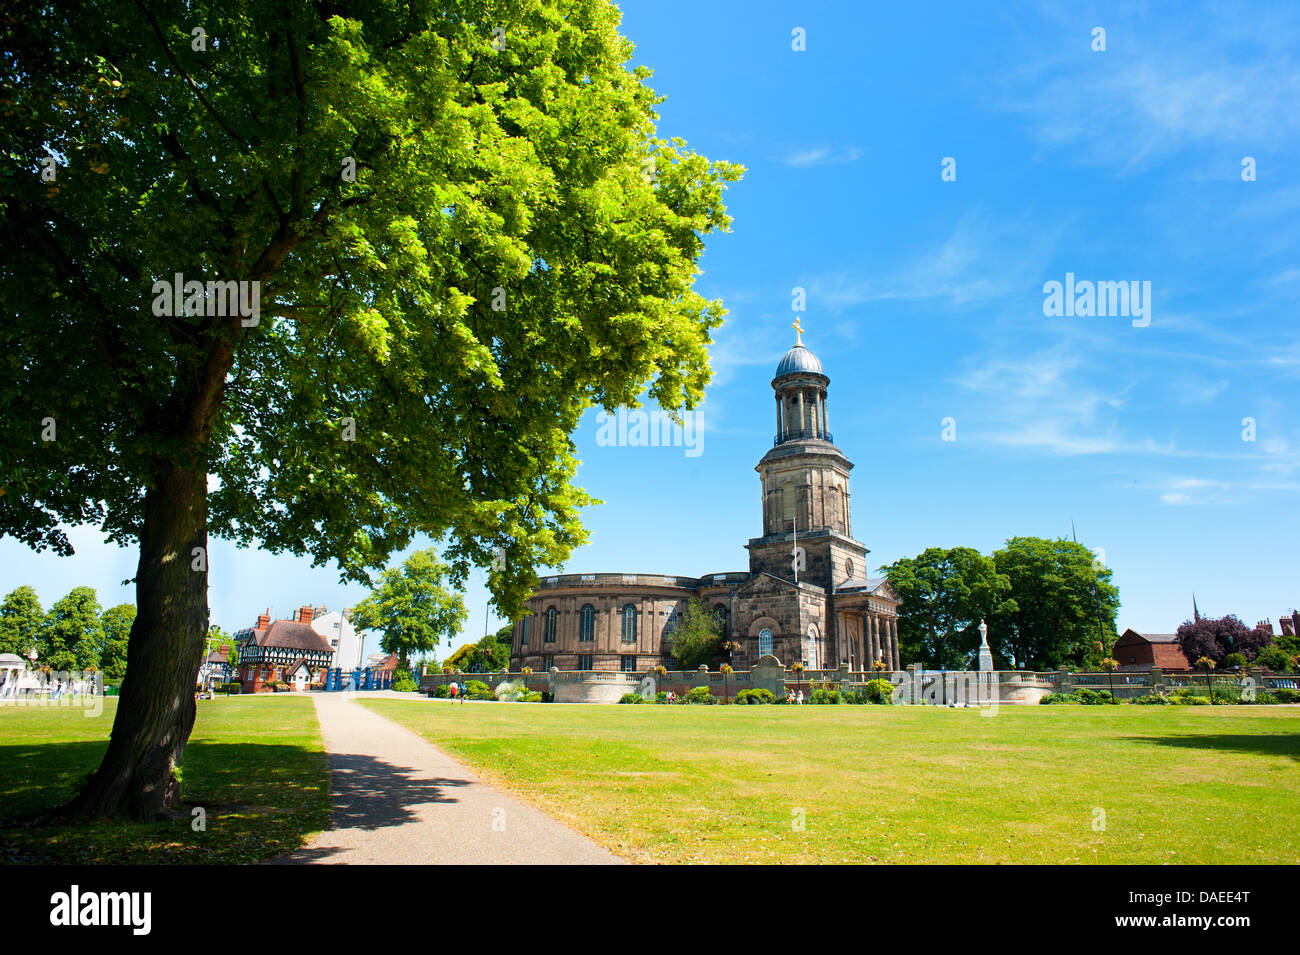 St Chad's Church from The Quarry, Shrewsbury, England. - Stock Image